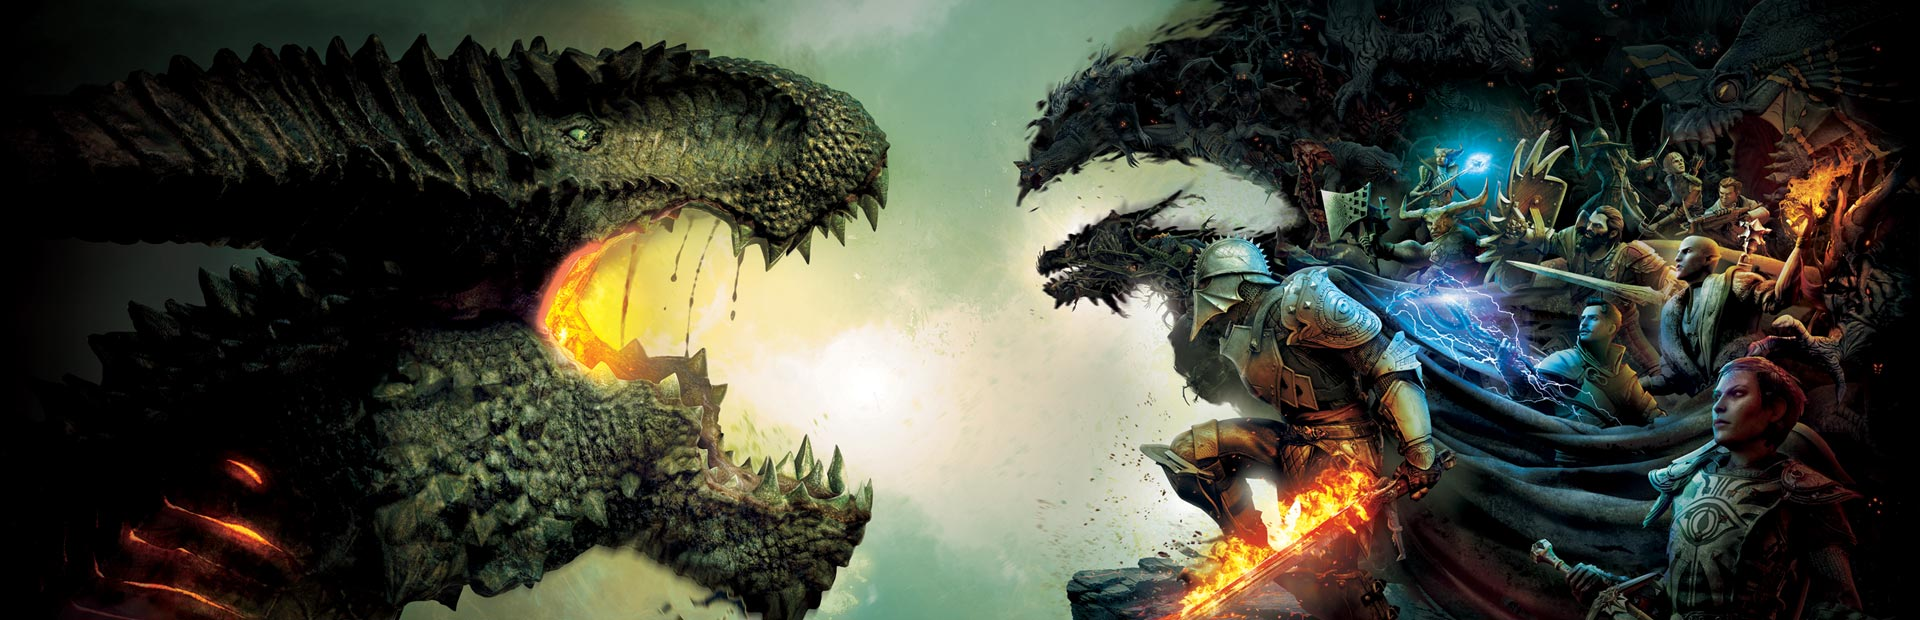 I want a Dragon Age ride. Maybe a VR coaster where I'm riding on the back of a dragon stabbing it. Or something. Photo courtesy BioWare and EA